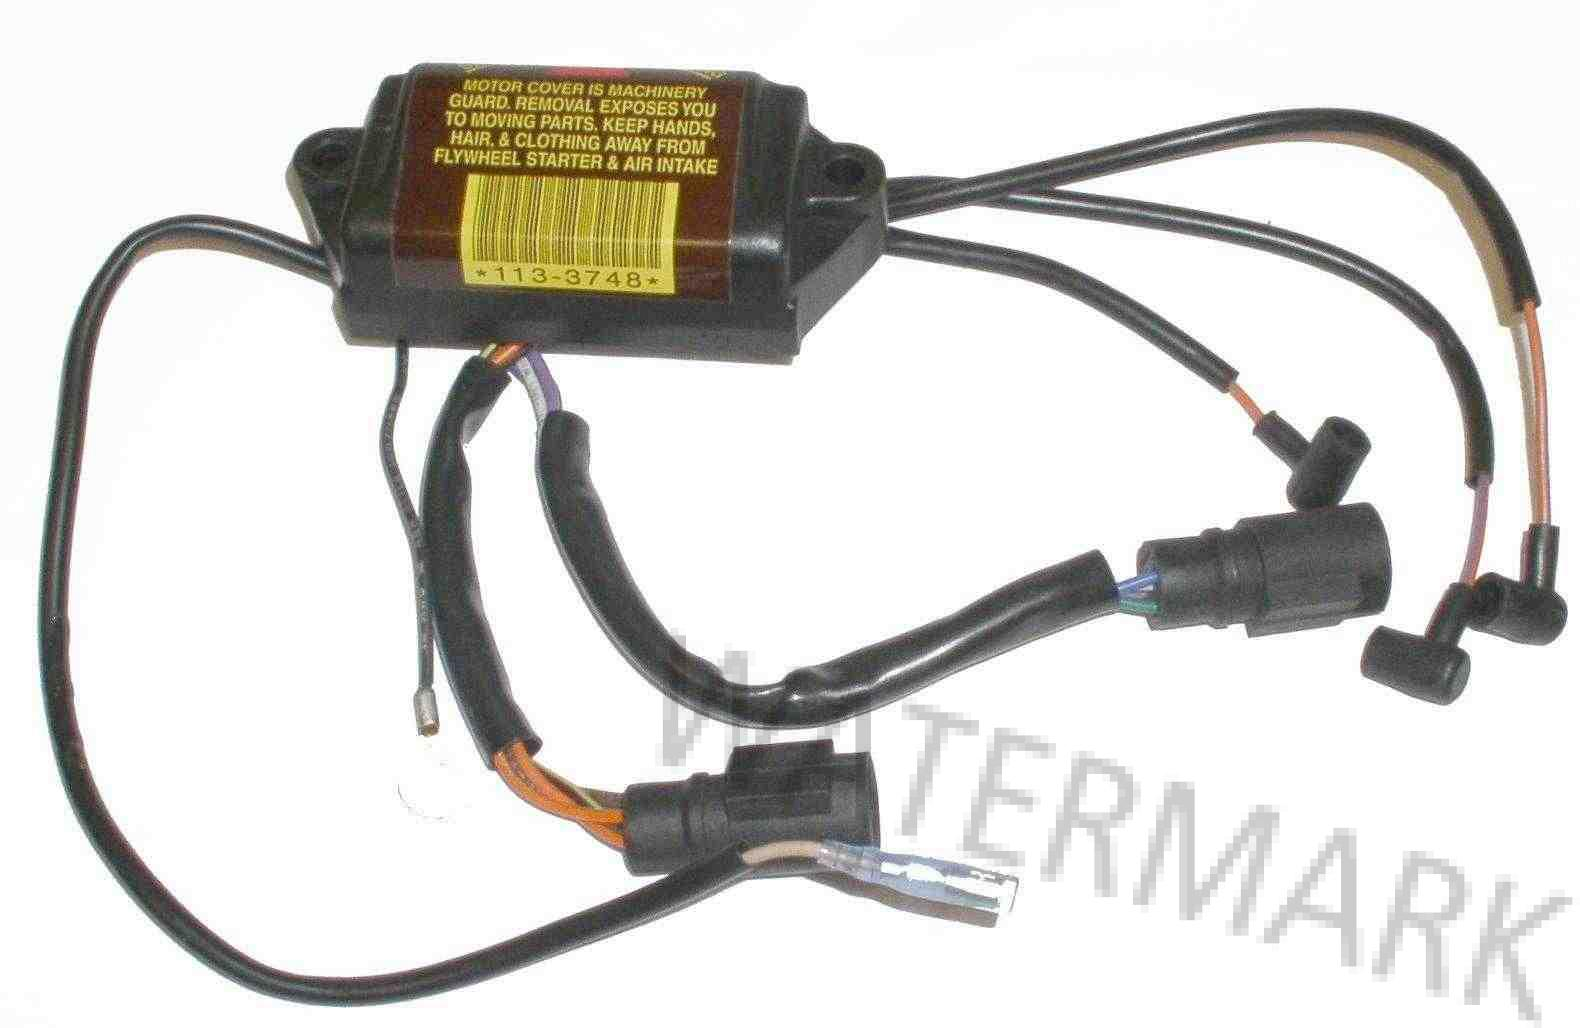 Tremendous Ignition Packs Cdi Ignition Module Johnson Evinrude 150 175Hp Wiring Cloud Rineaidewilluminateatxorg